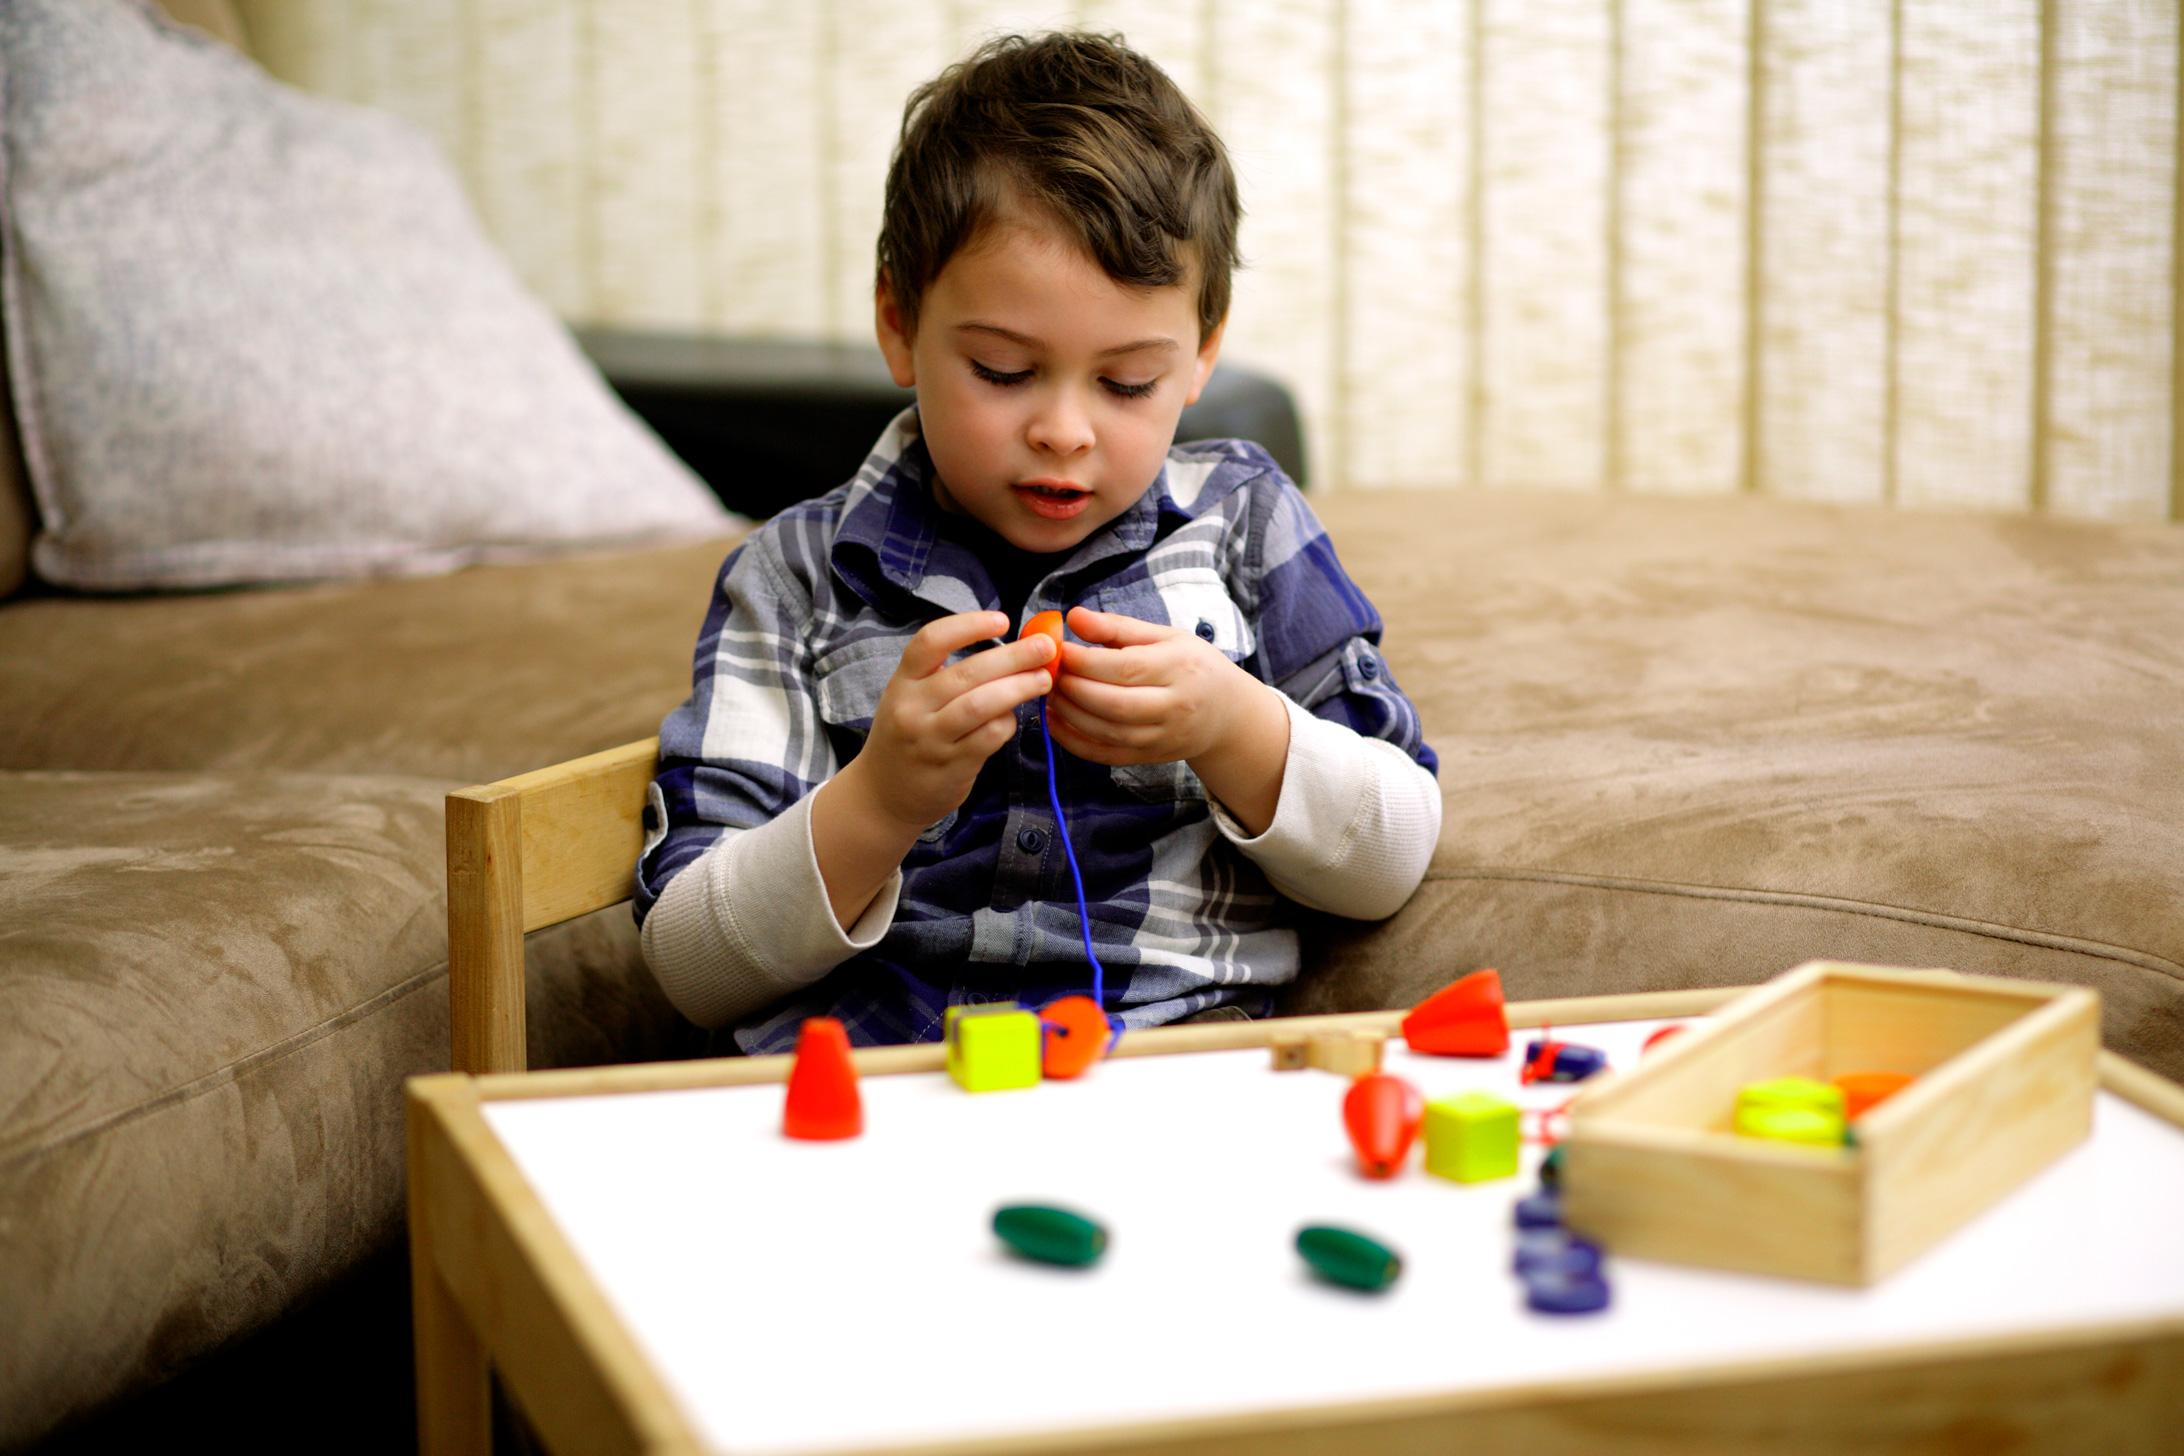 Cognitive Milestones for four-year-olds